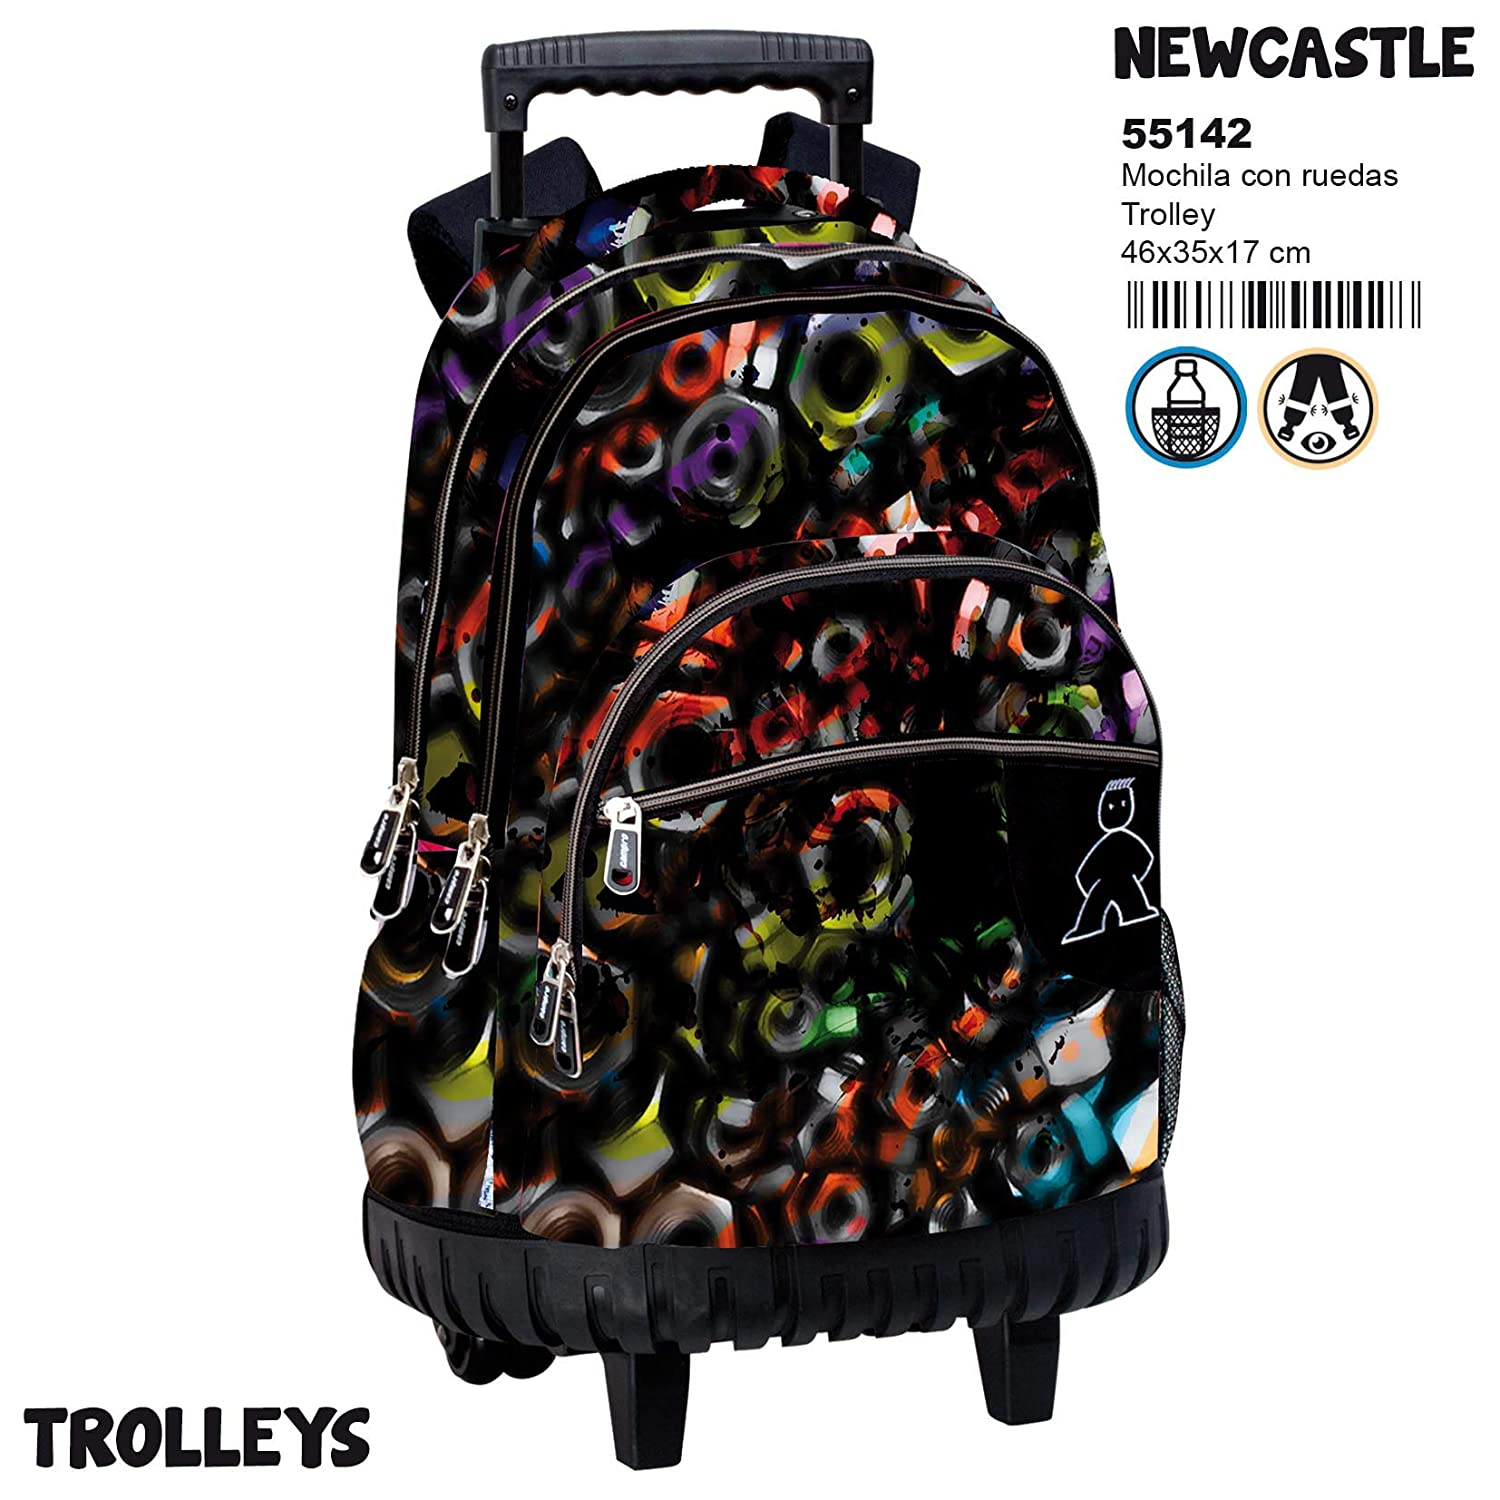 Amazon.com | Montichelvo Trolley Cmp Newcastle Travel Tote, 46 cm, Multicolour | Travel Totes